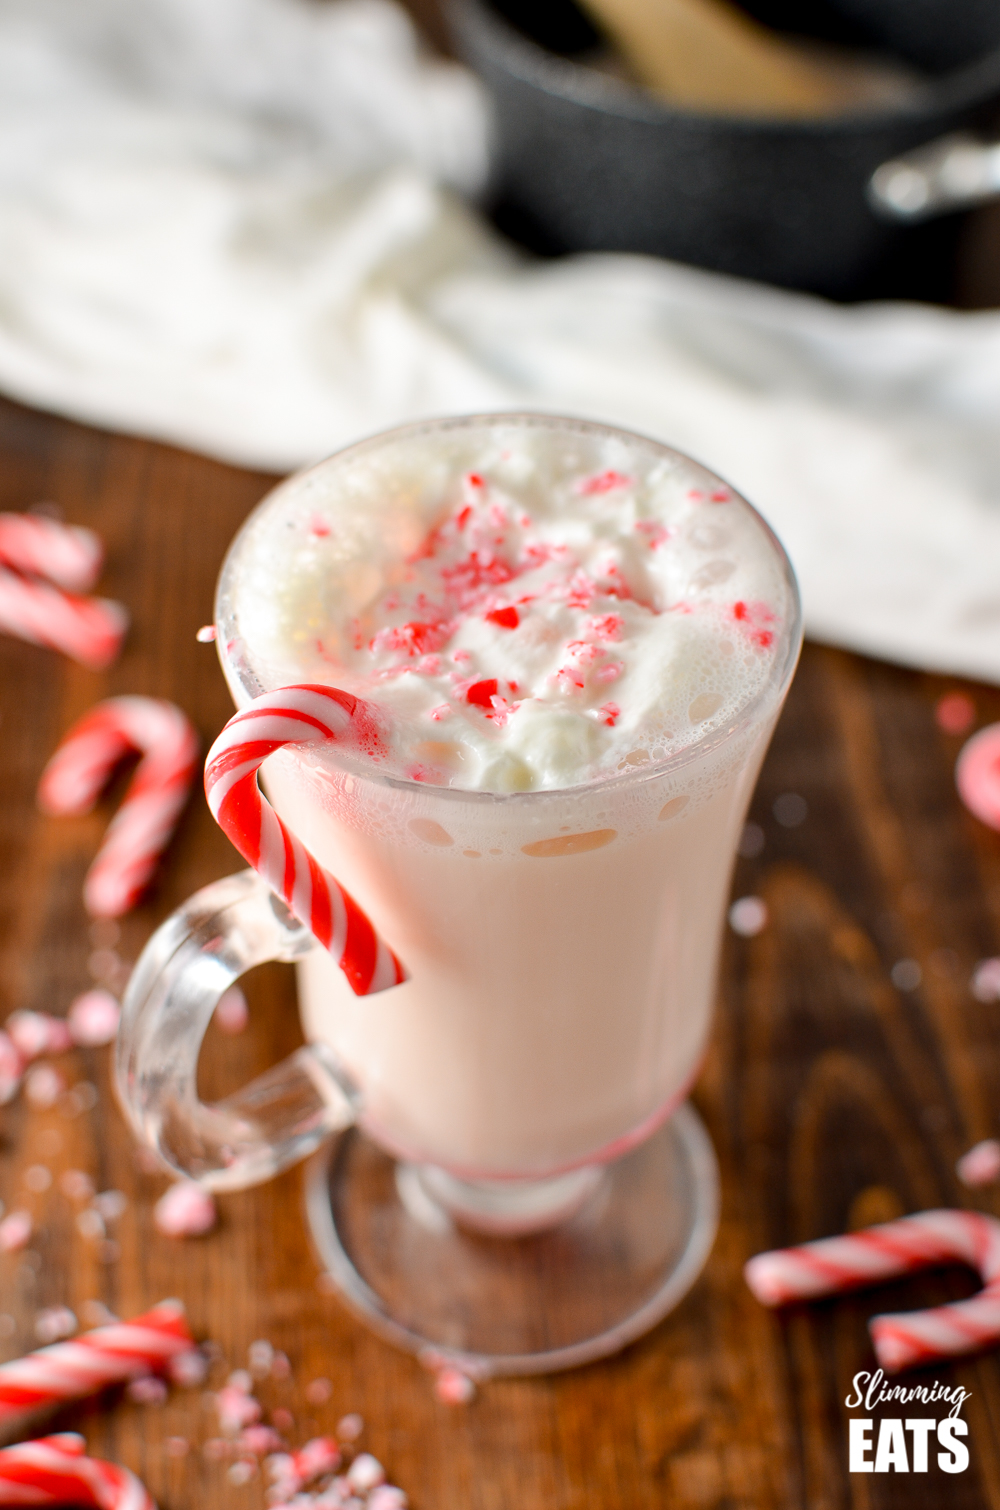 candy cane white hot chocolate in glass mug with candy cane piece on edge of mug